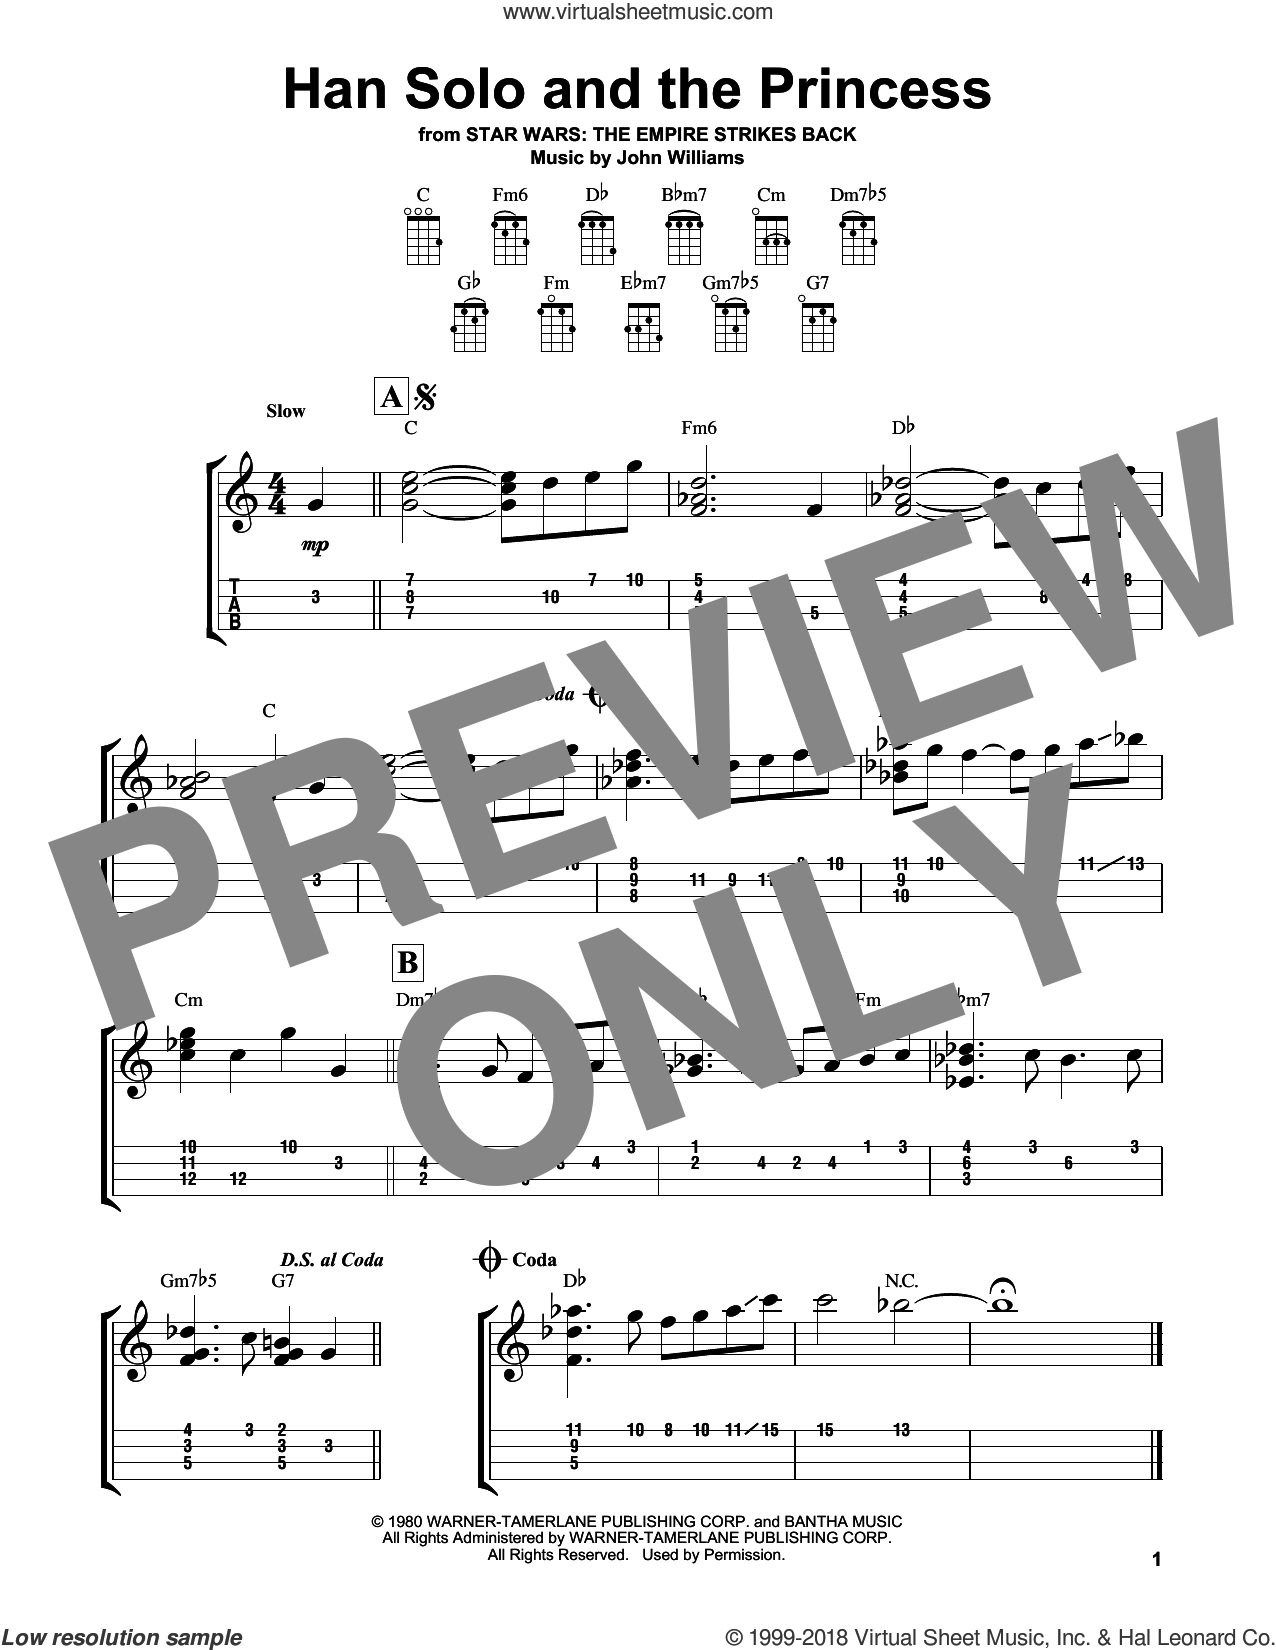 Han Solo And The Princess sheet music for ukulele by John Williams, intermediate skill level